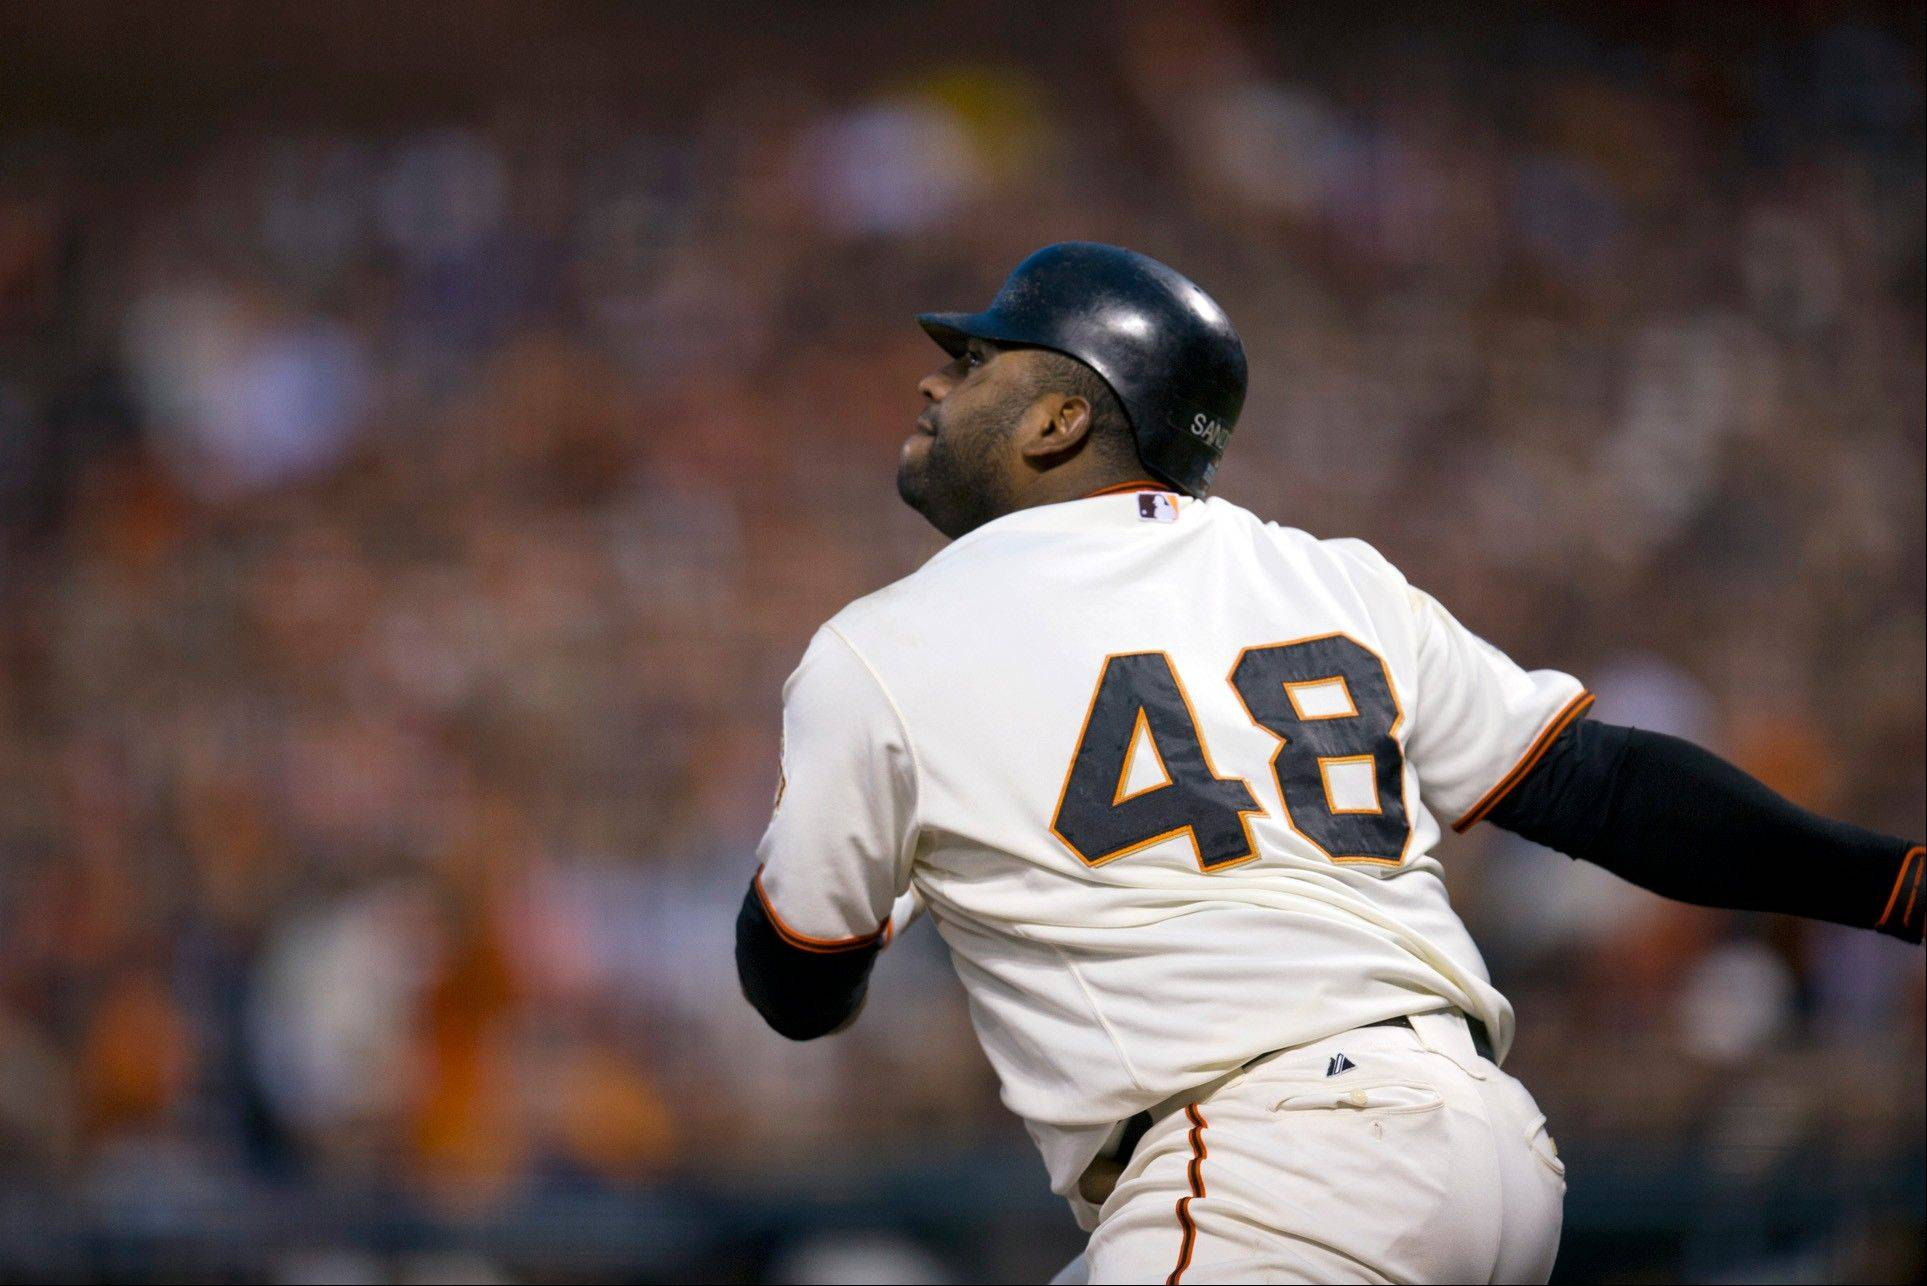 San Francisco Giants third baseman Pablo Sandoval watches the flight of his second home run against the Detroit Tigers Wednesday during Game 1 of the World Series in San Francisco.